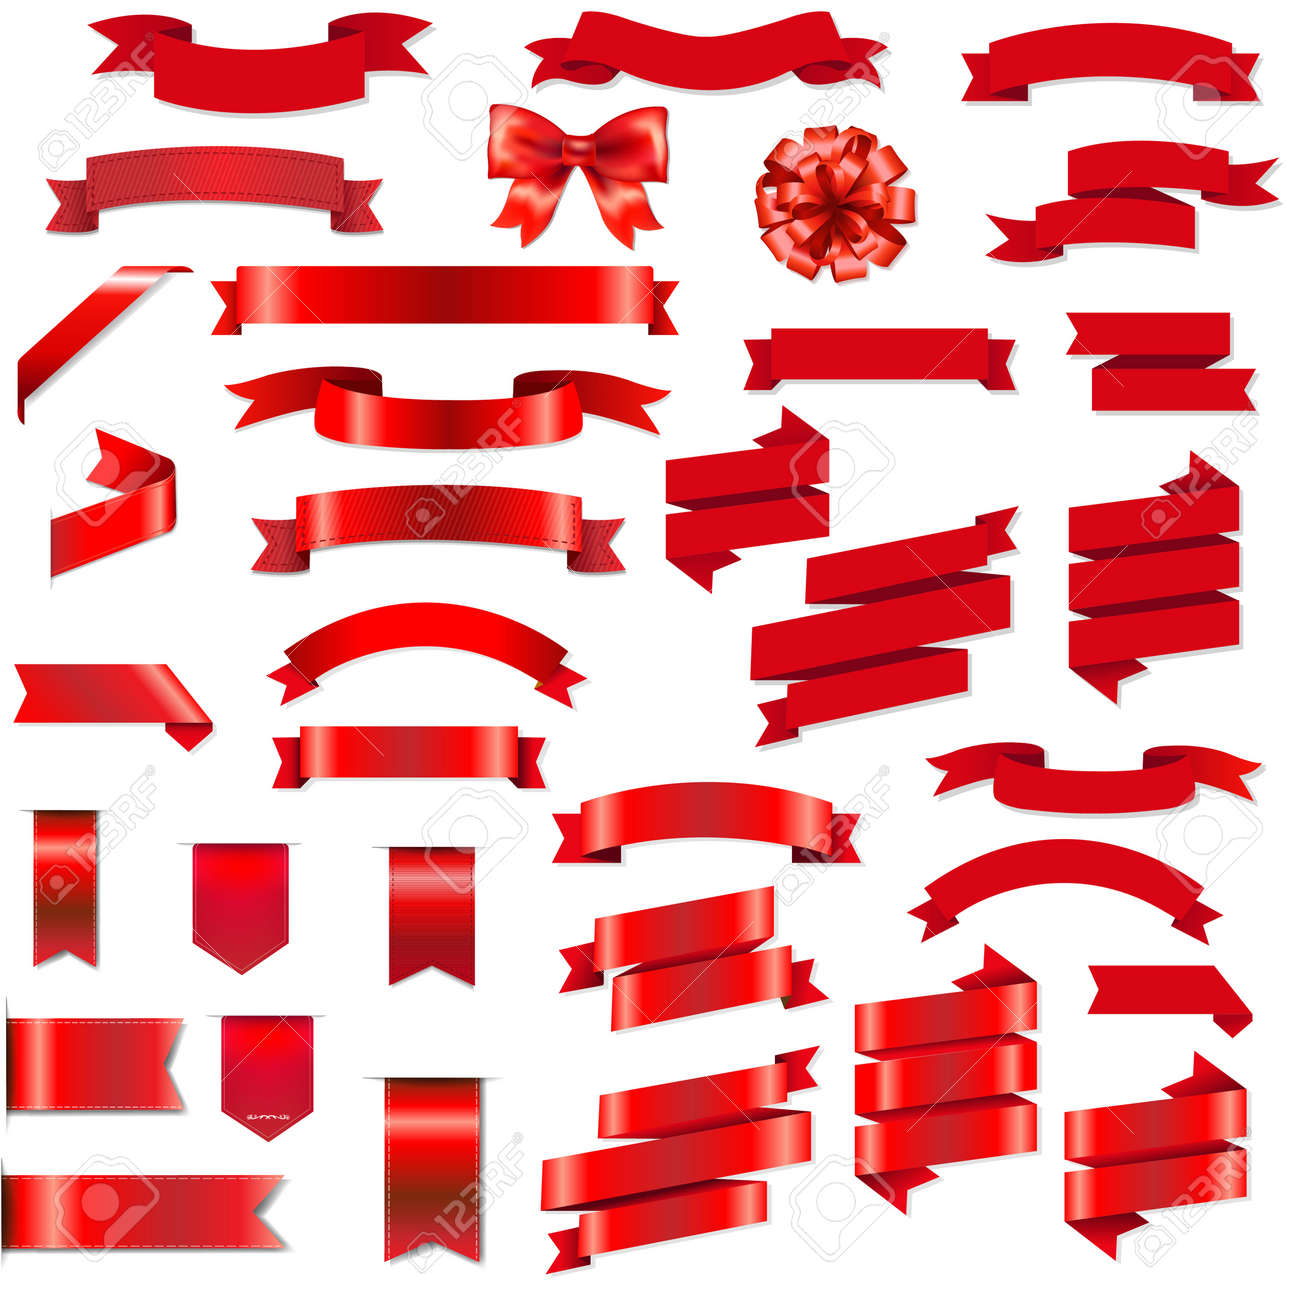 Red Ribbons And Bow Set With Gradient Mesh, Vector Illustration - 47009657